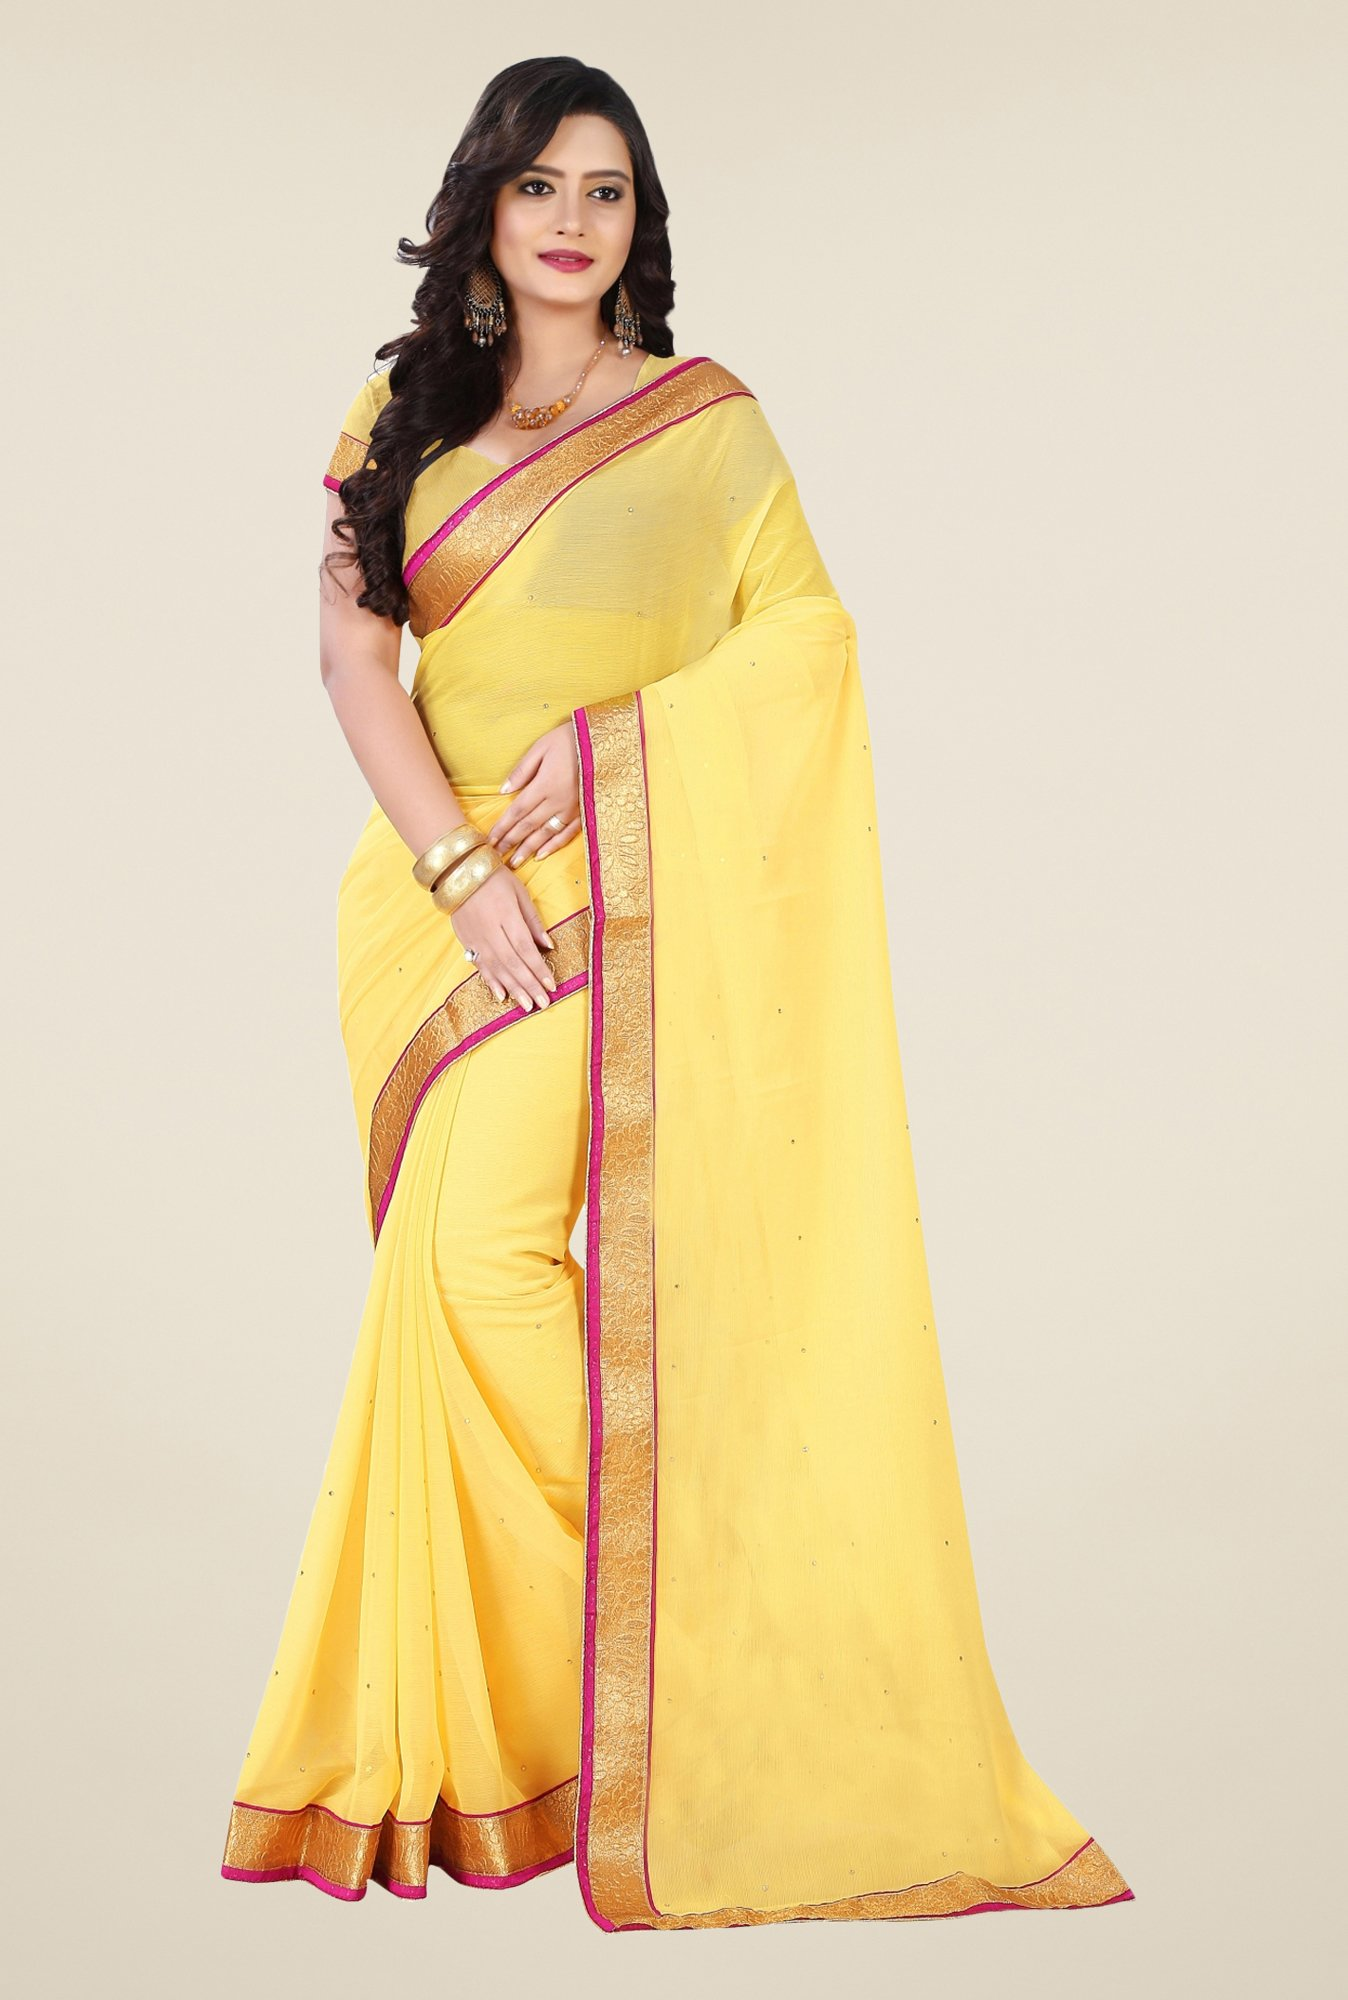 Triveni Yellow Chiffon Saree